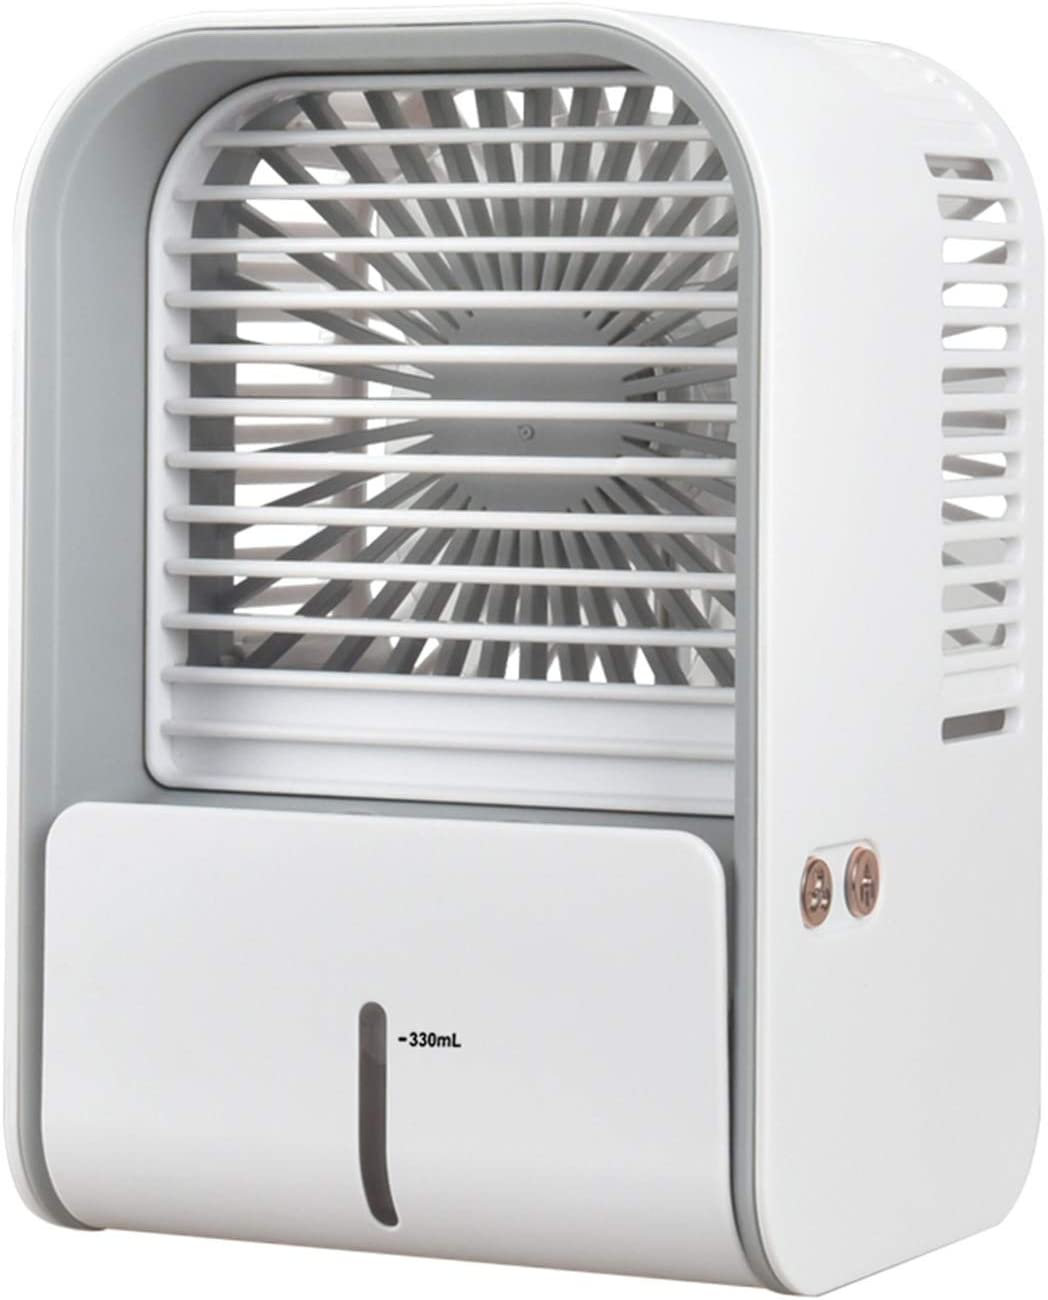 Decdeal Portable Car Air Conditioner Quantity limited Fan Wind Cool Hum 2-in-1 Raleigh Mall